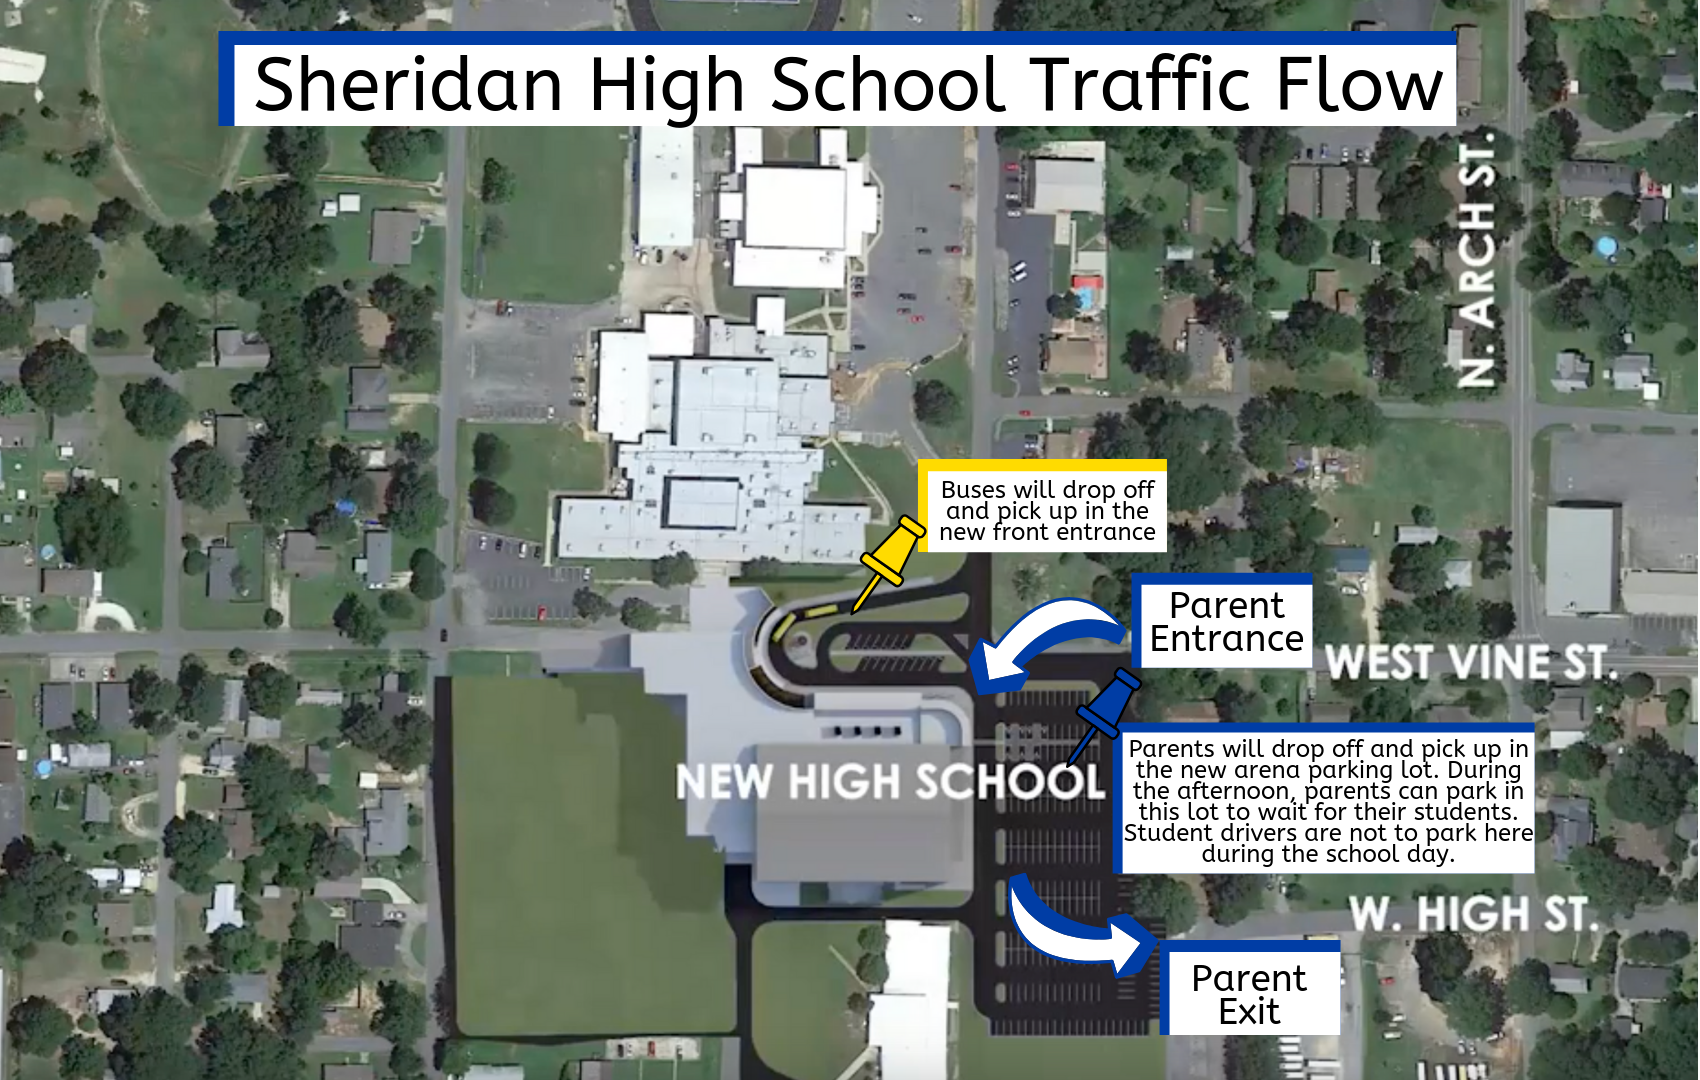 SHS parents will drop off and pick up students in the new arena parking lot